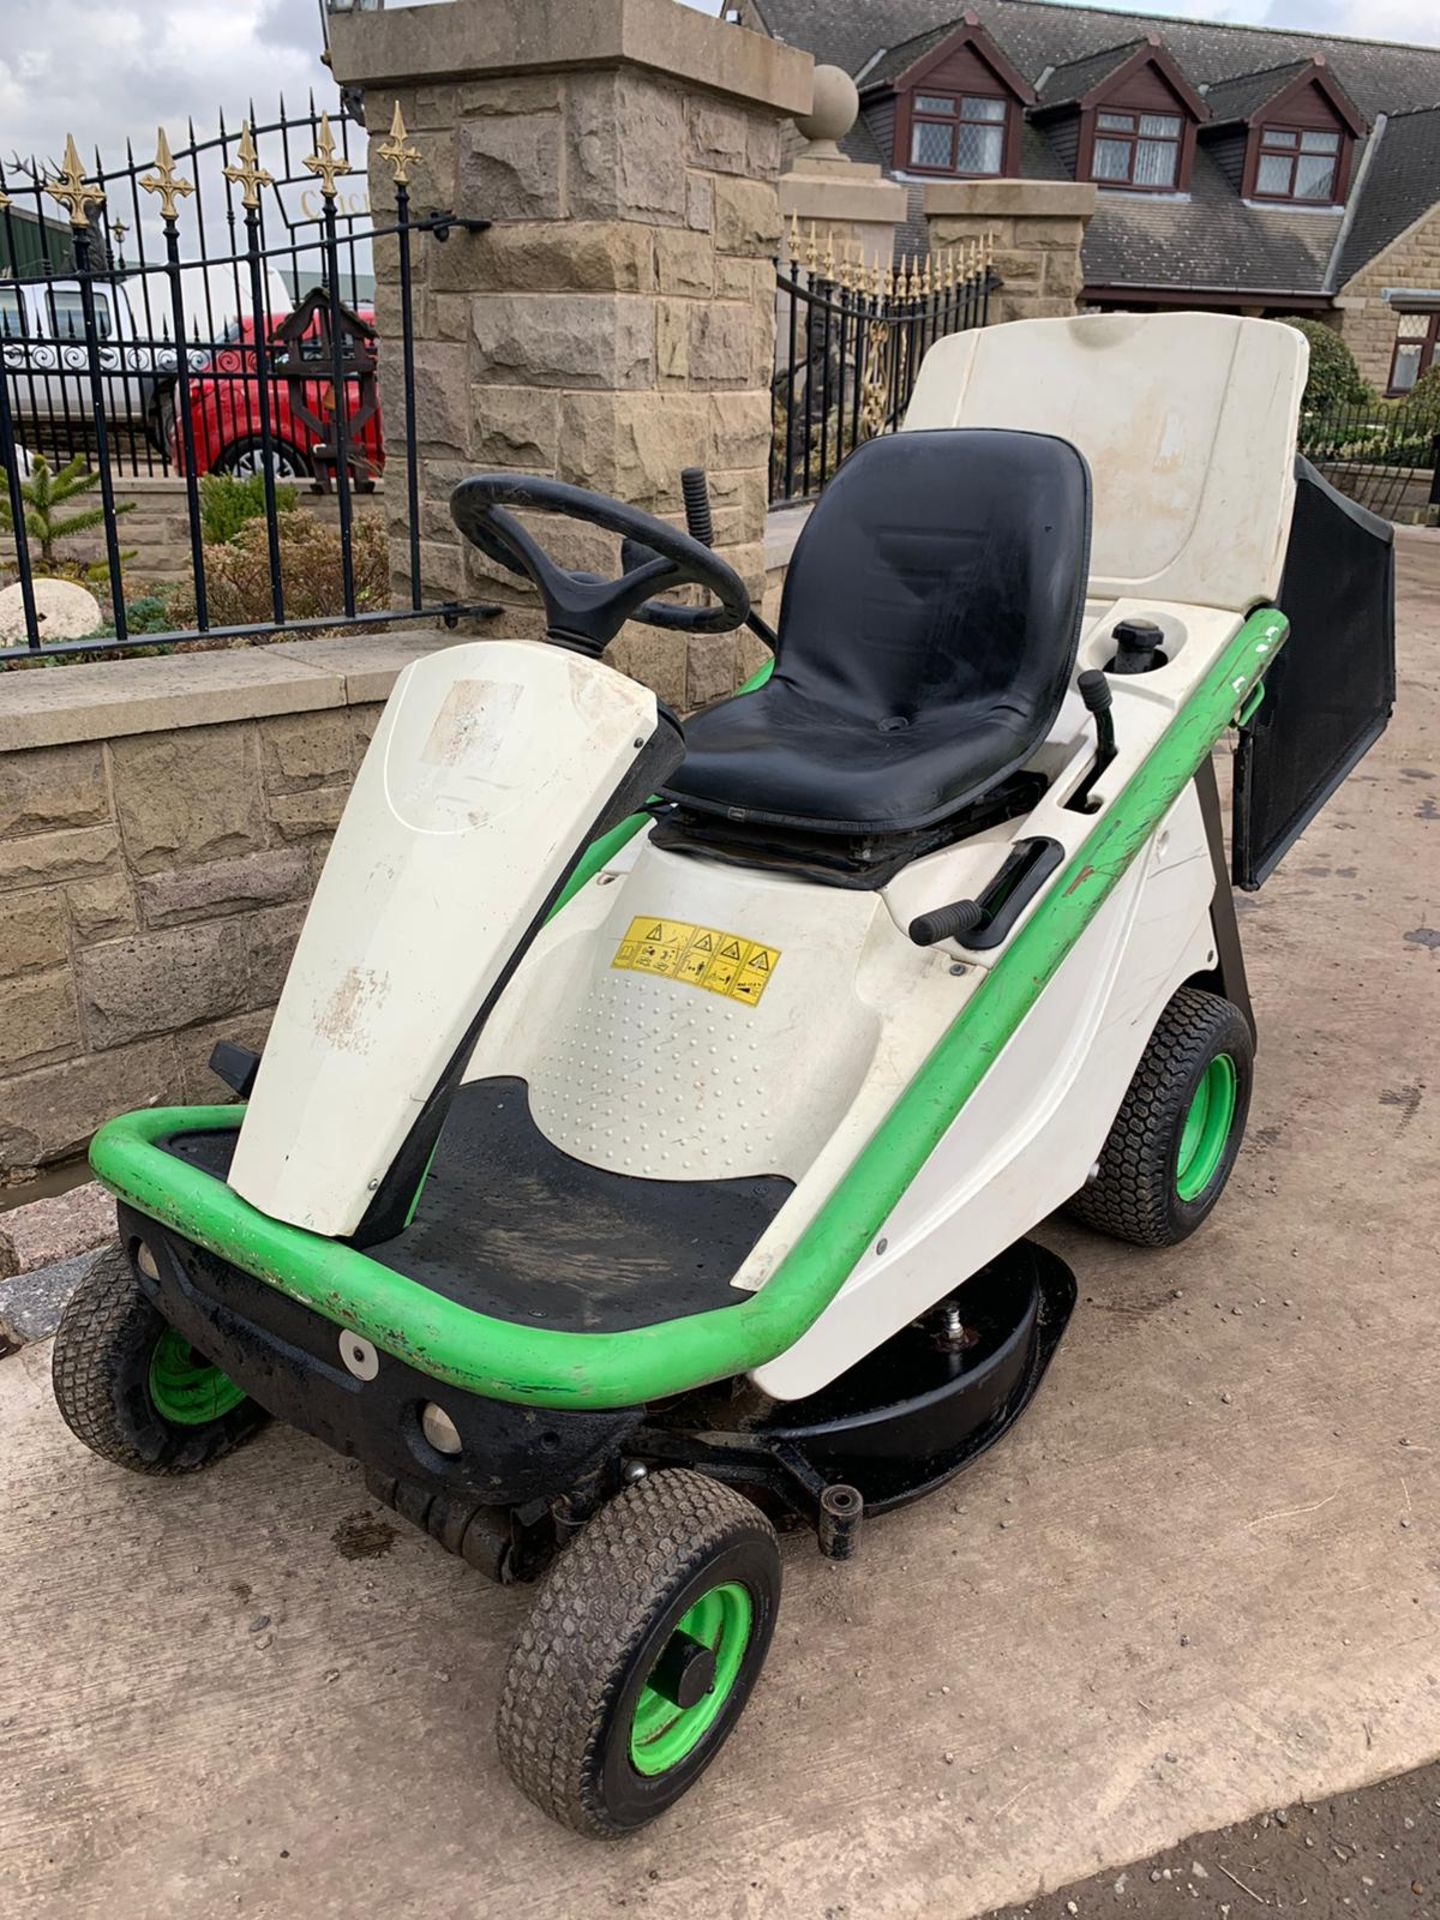 2015 ETESIA HYDRO 80 RIDE ON LAWN MOWER, RUNS, DRIVES AND CUTS *PLUS VAT* - Image 3 of 5